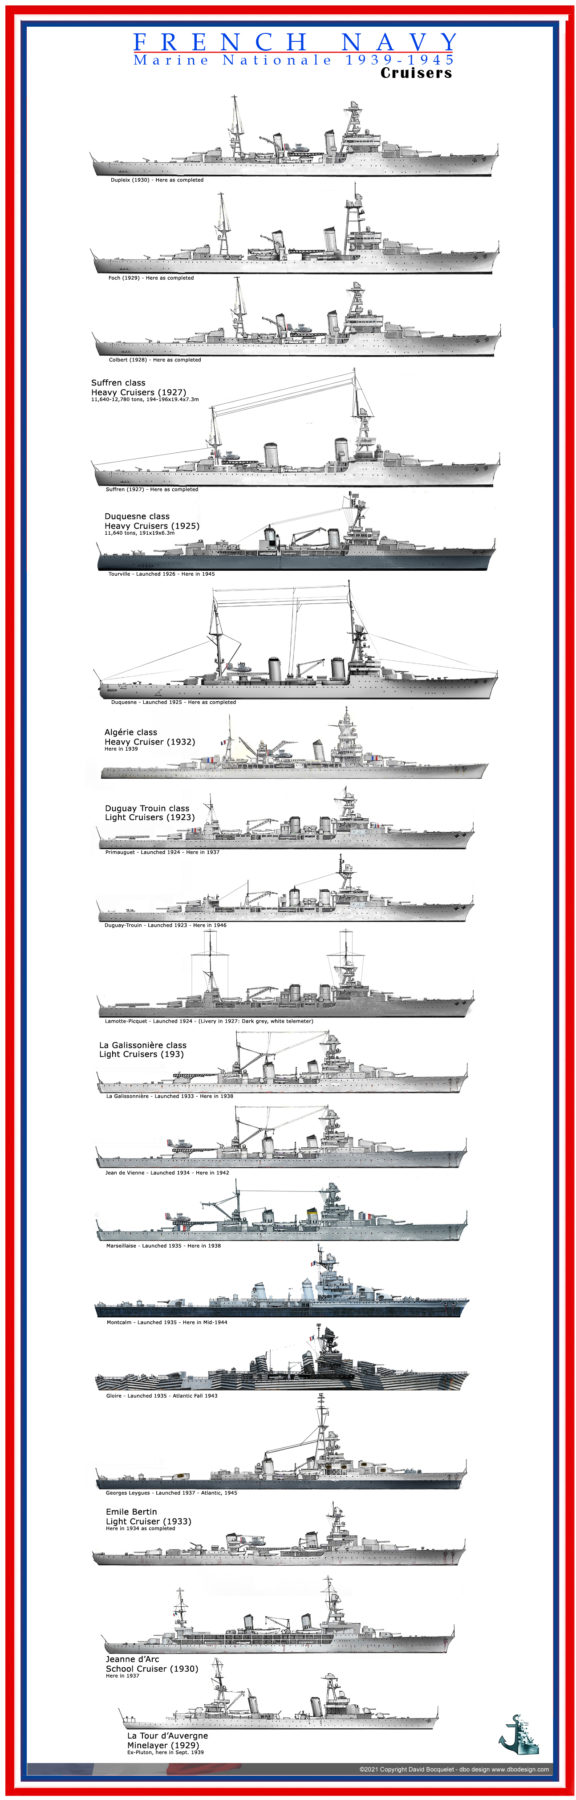 An overview of individual French cruisers with various liveries